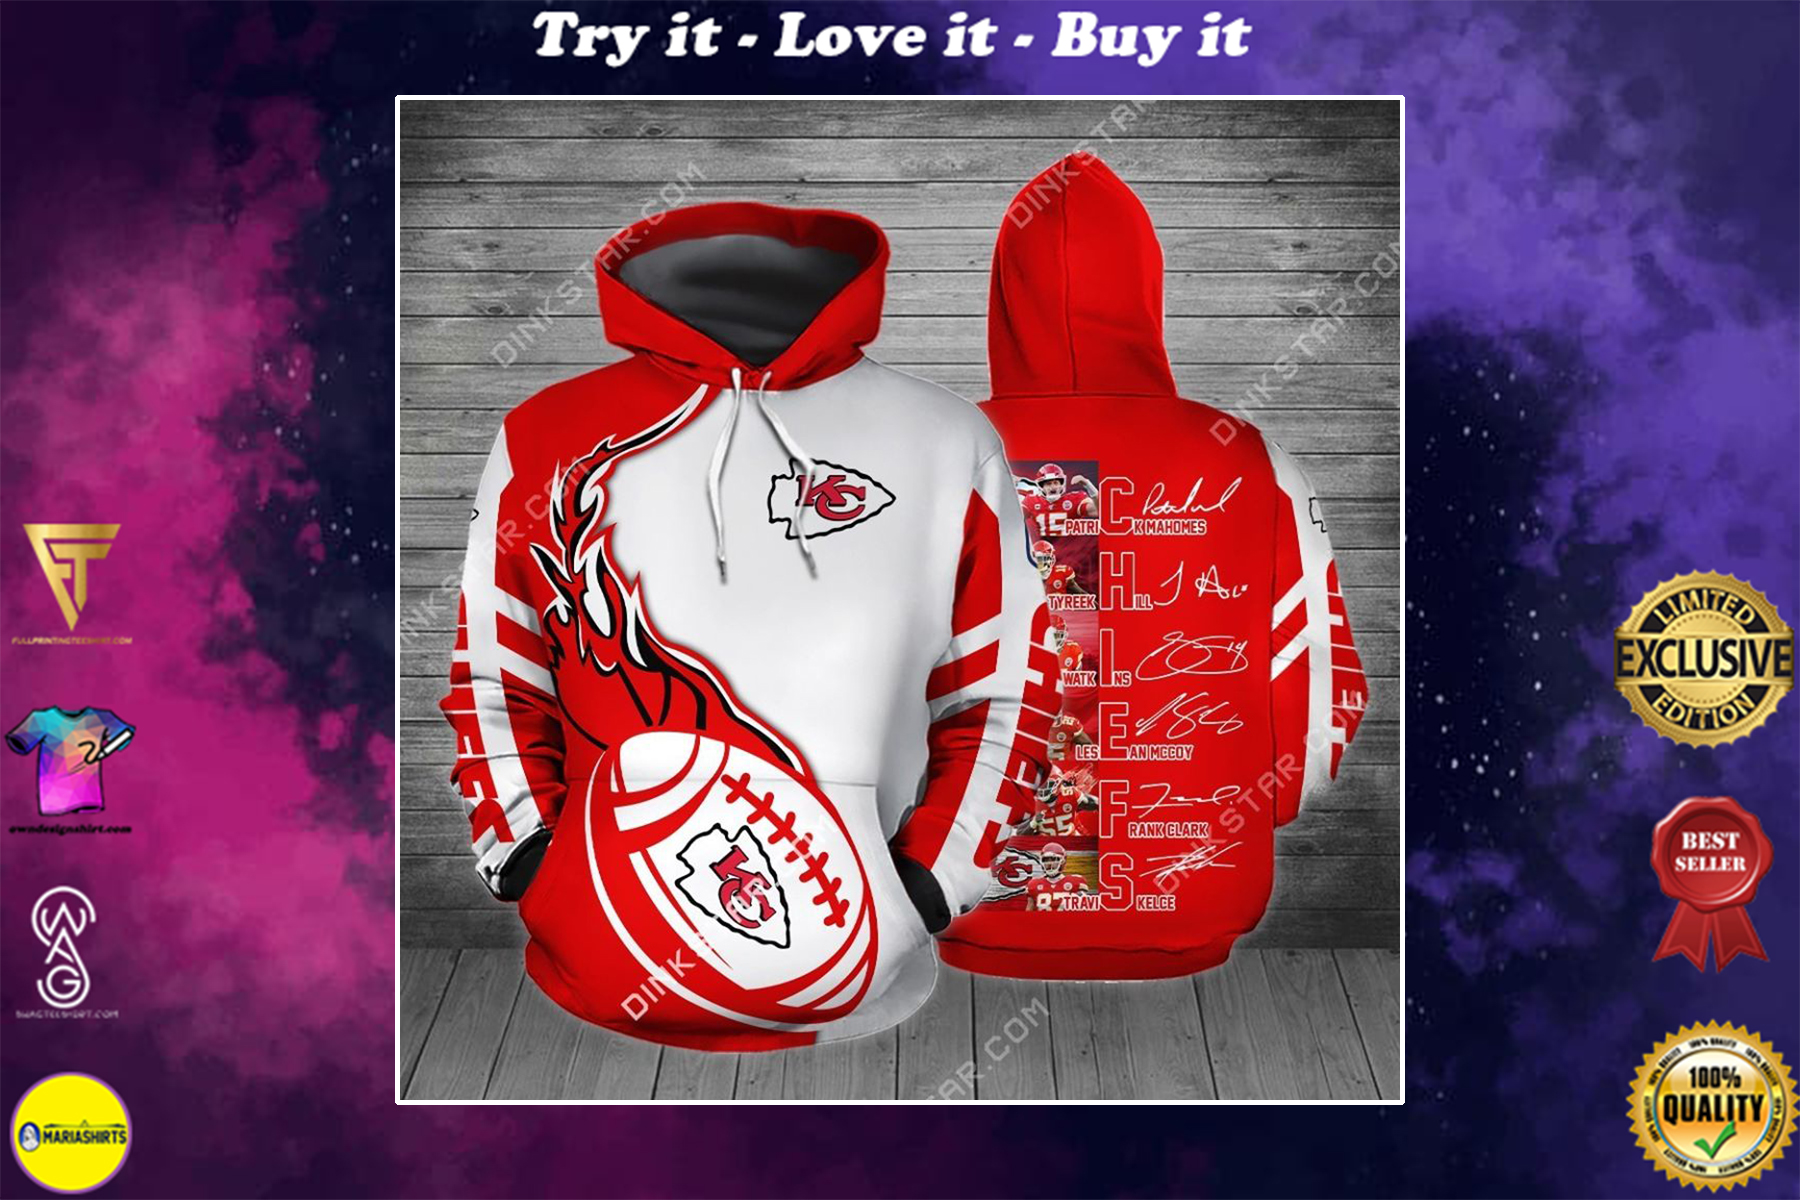 [highest selling] kansas city chiefs member of team signatures full over printed shirt - maria